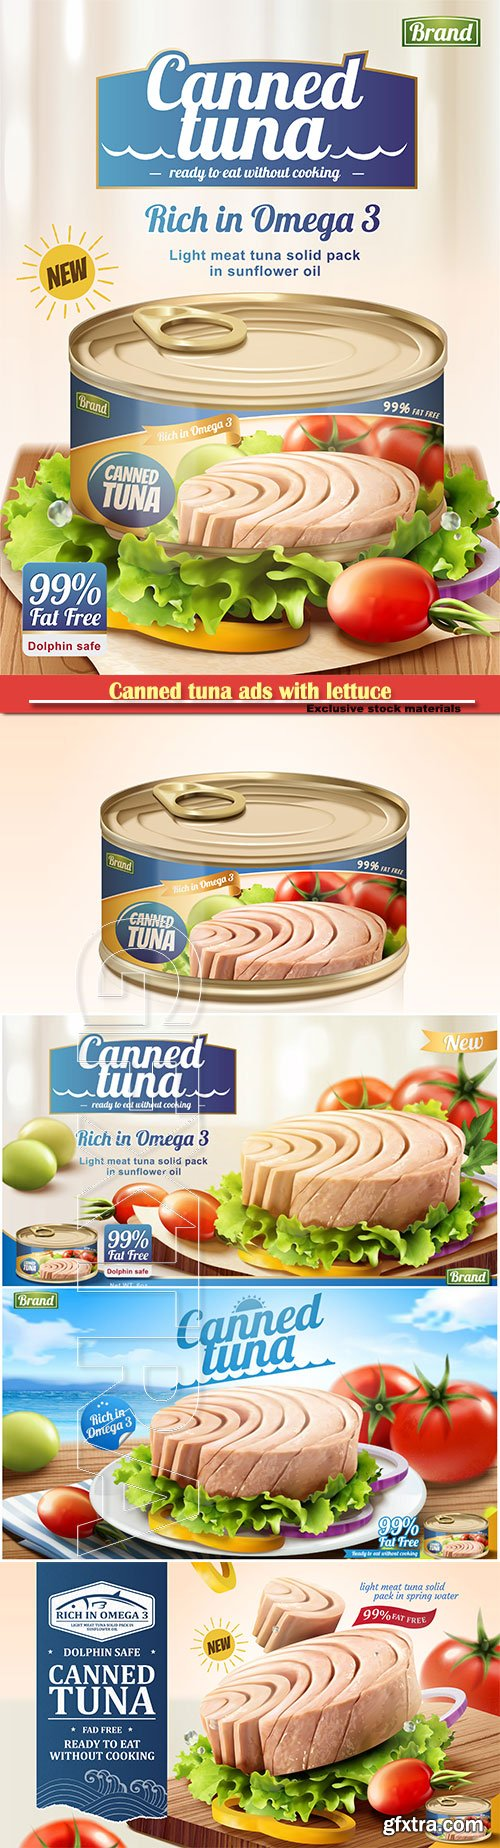 Canned tuna ads with lettuce and tomato in 3d illustration